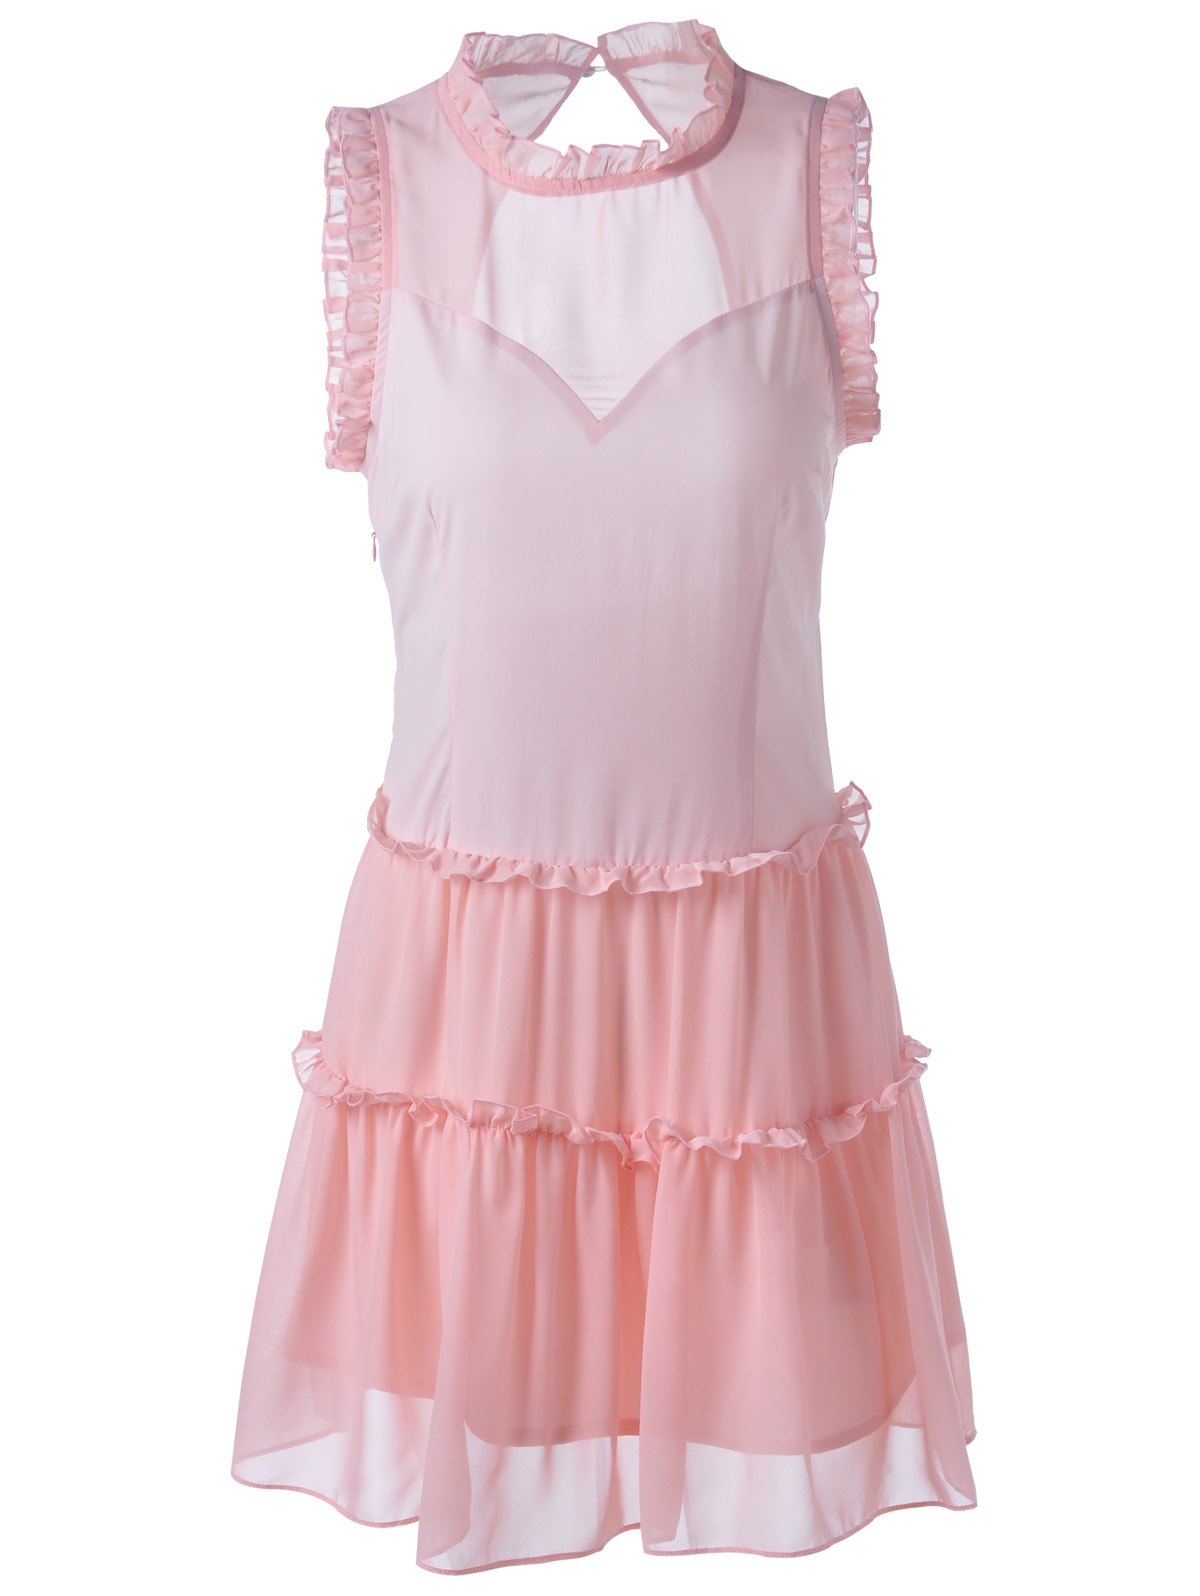 Sweet Women's Fitted Ruffle Neck Solid Color Knee-Length Dress - LIGHT PINK S